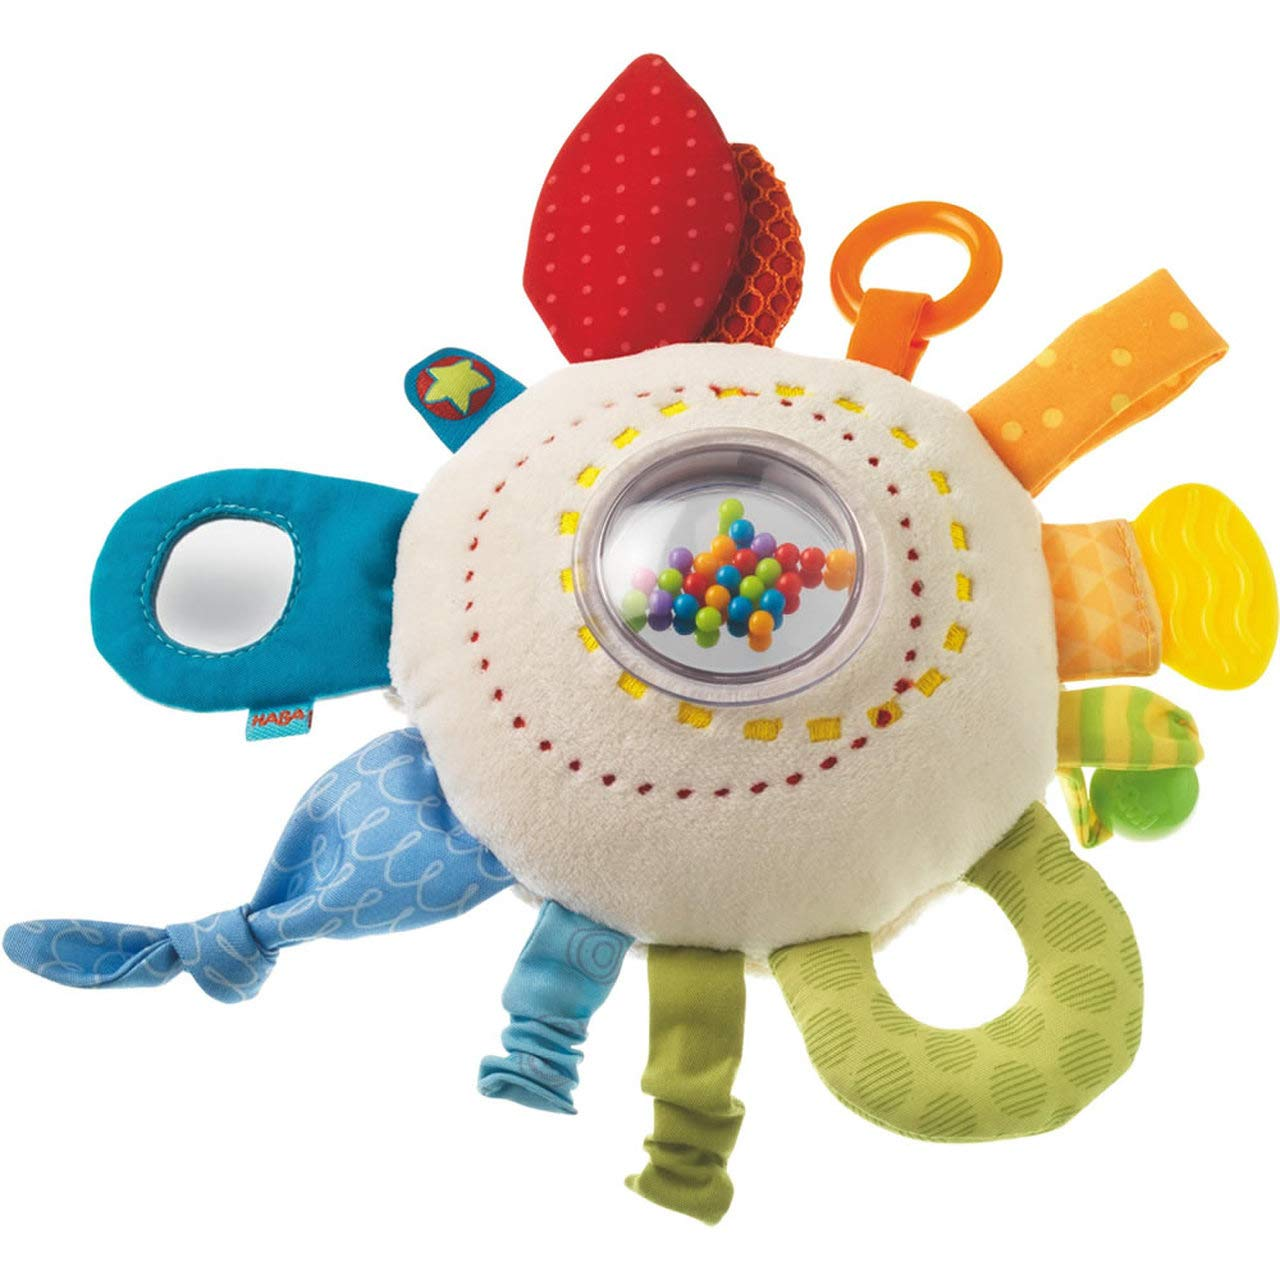 HABA Teether Cuddly Rainbow Round - Soft Activity Toy with Rattling & Teething Elements by HABA